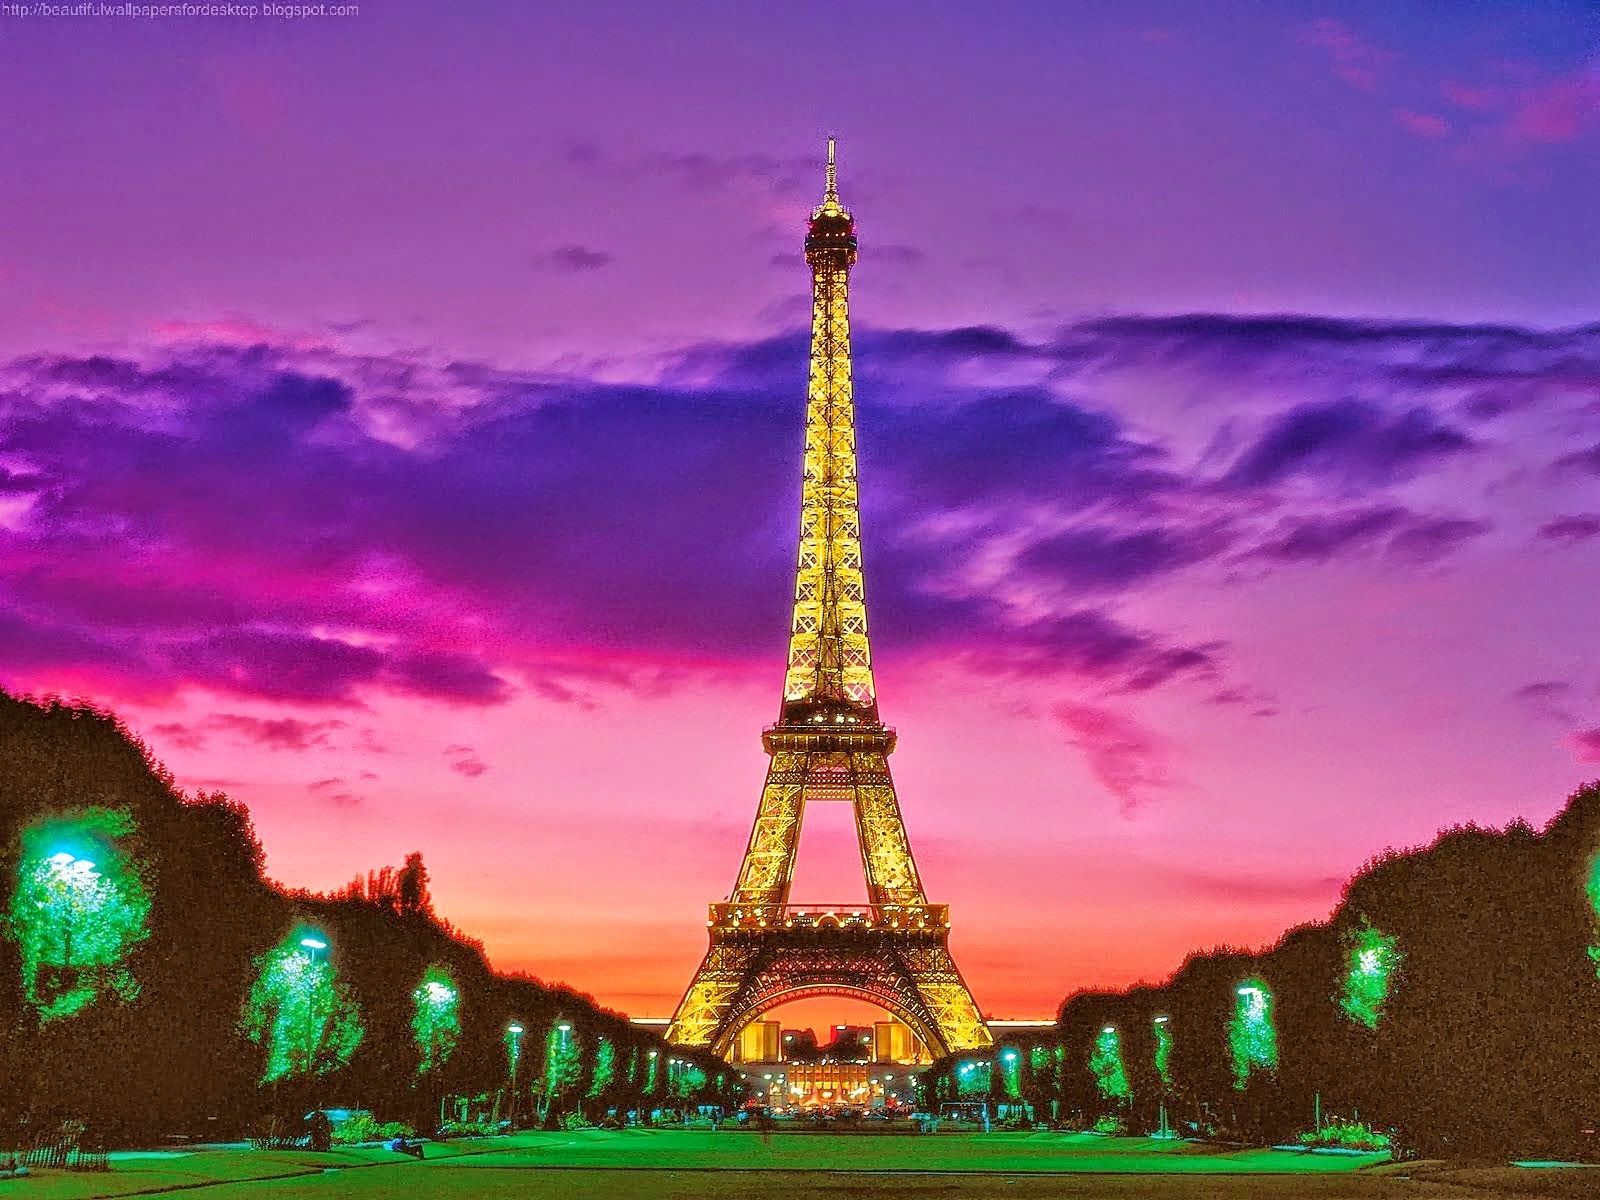 Eiffel tower desktop wallpaper wallpapersafari - Paris eiffel tower desktop wallpaper ...